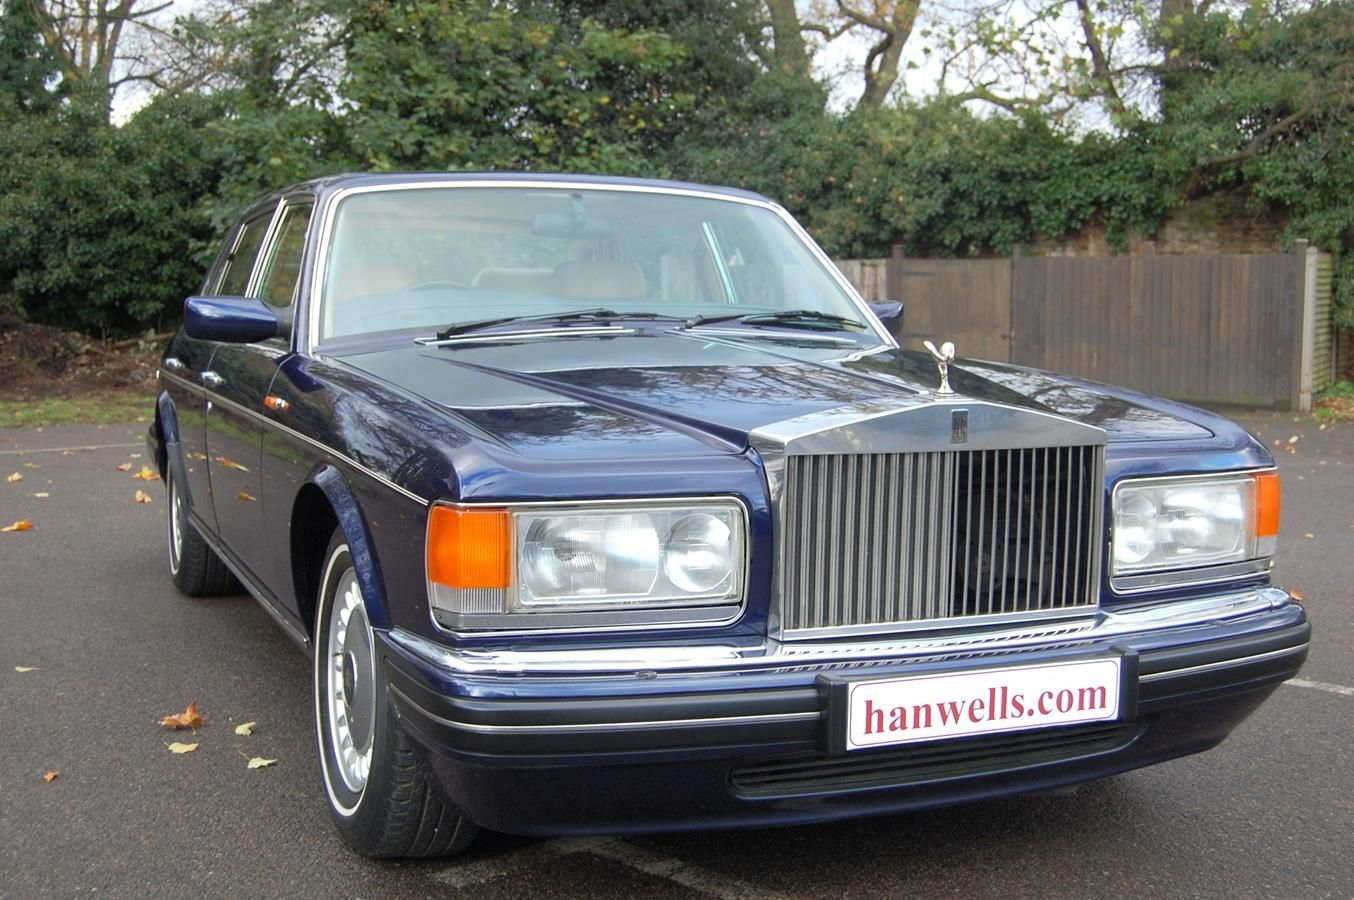 1997 p rolls royce silver dawn finished in peacock blue with cotswold interior with